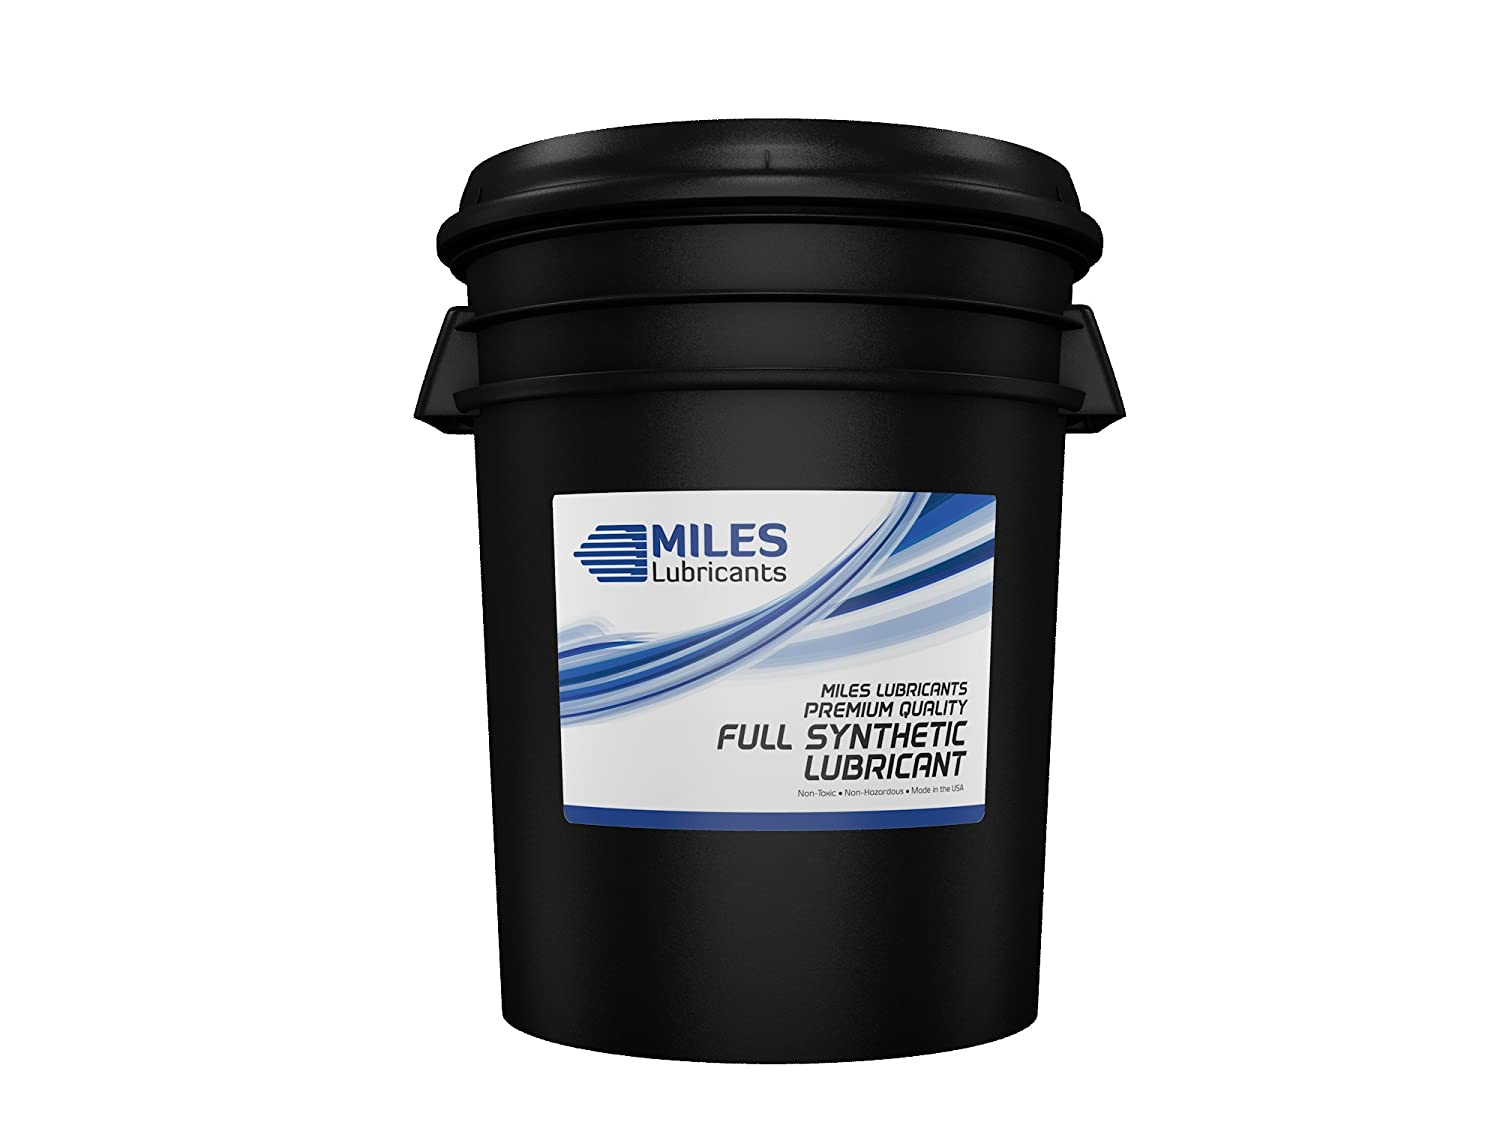 MILES LUBRICANTS MSF1554004 Sb Comp Oil Plus ISO 46 Synthetic Blend Rotary Compressor Fluid, 5 gal, Pail